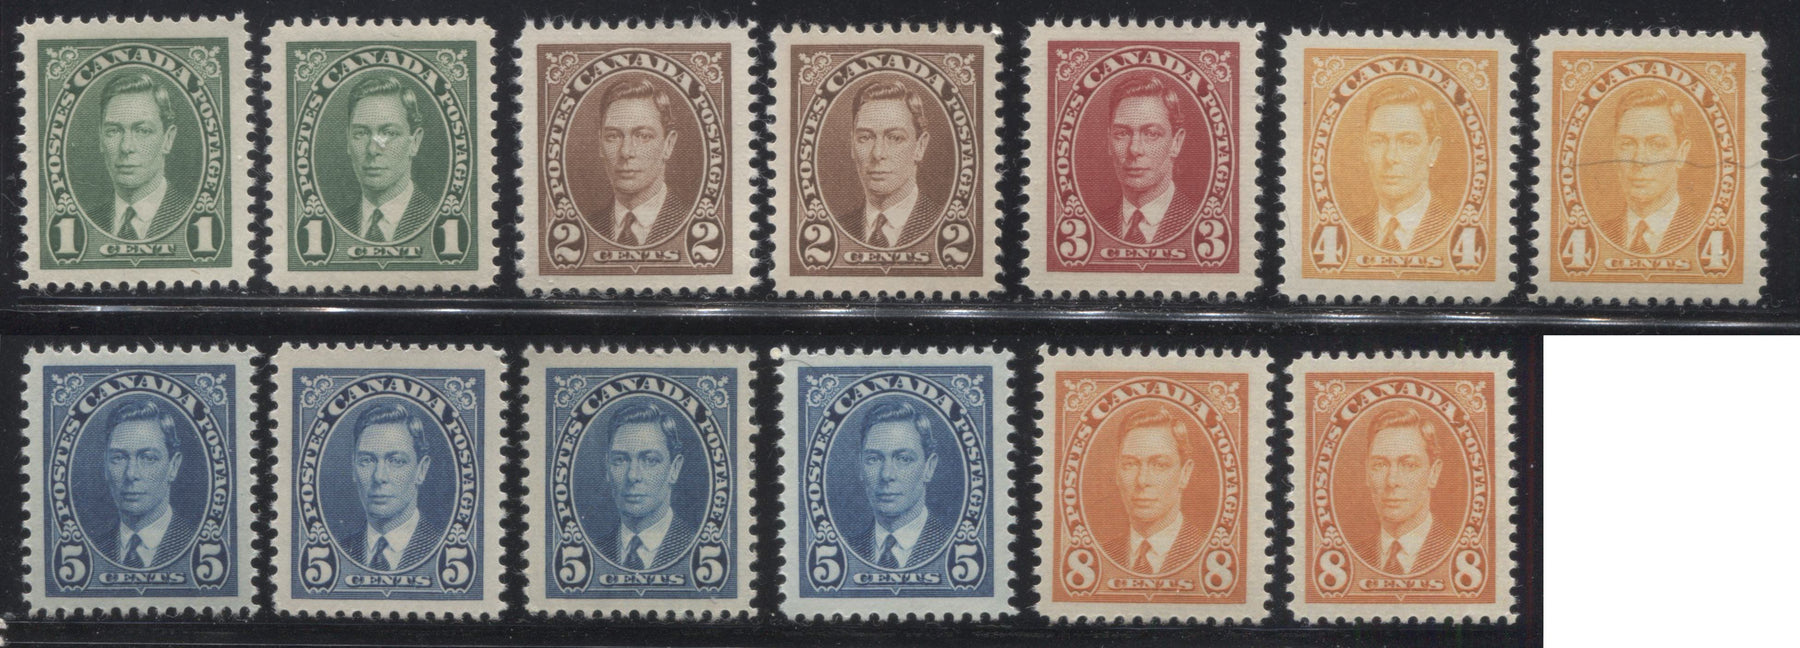 Canada #231-236 1c Green - 8c Orange King George VI, 1937-1942 Mufti Issue, A Group of Very Fine NH Singles Showing Different Shades, Papers and Gum Types Brixton Chrome